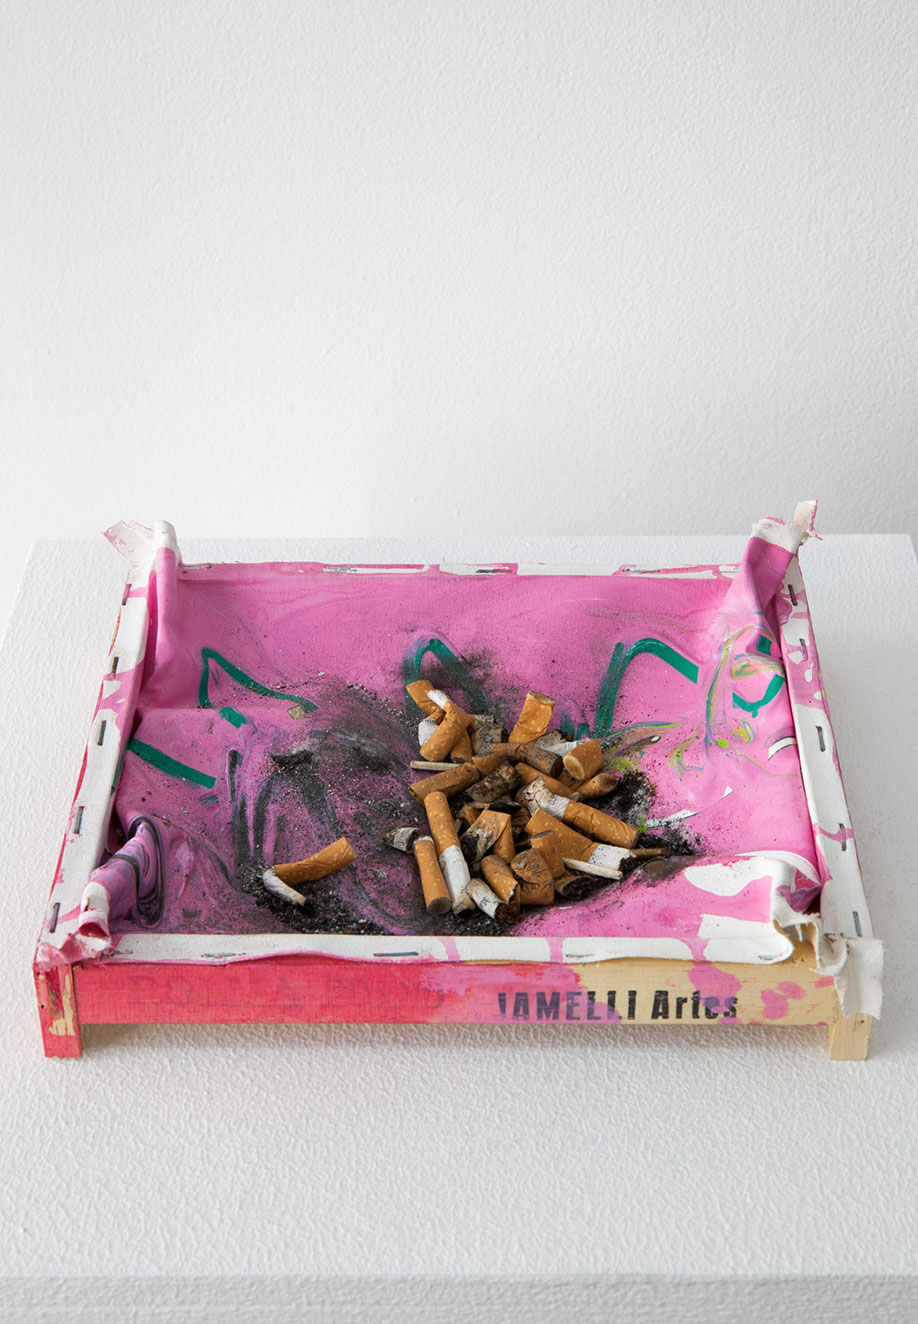 <b>Title:&nbsp;</b>Painting for a Smoker<br /><b>Year:&nbsp;</b>2013<br /><b>Medium:&nbsp;</b>Cigarettes, painting<br /><b>Size:&nbsp;</b>36 x 5 x 21 cm